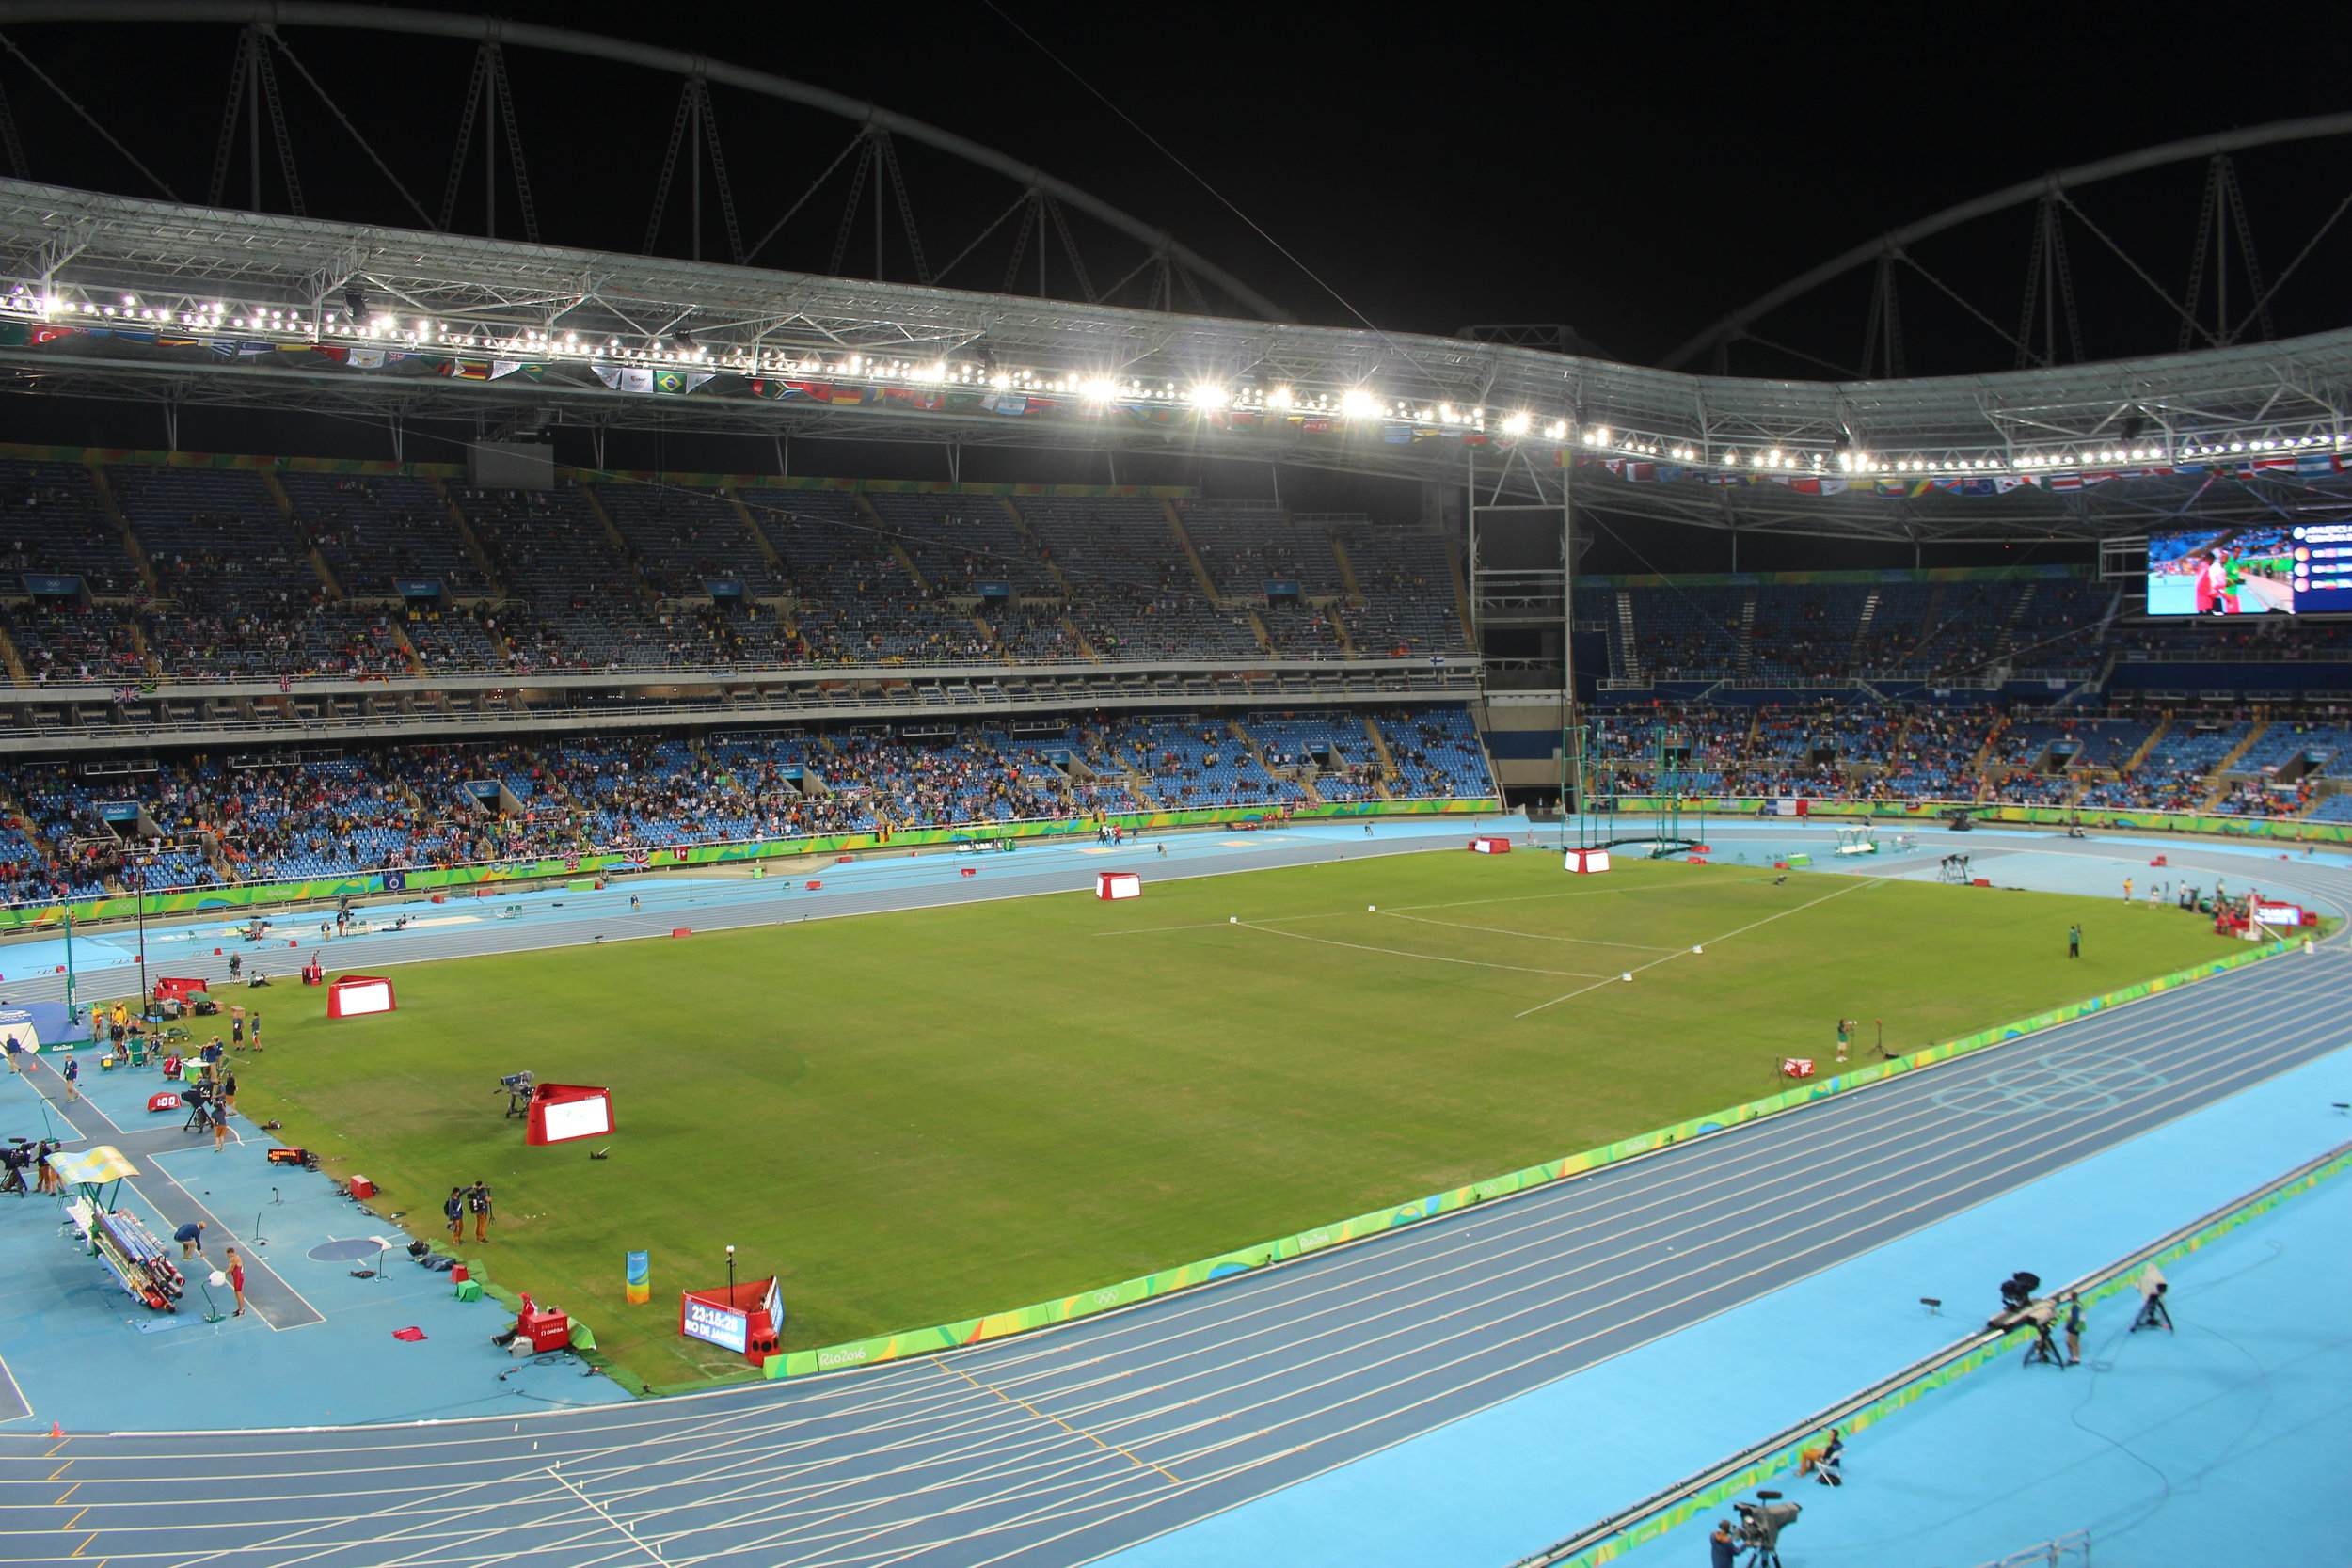 Empty seats dominate the view in the Engenhao athletics stadium